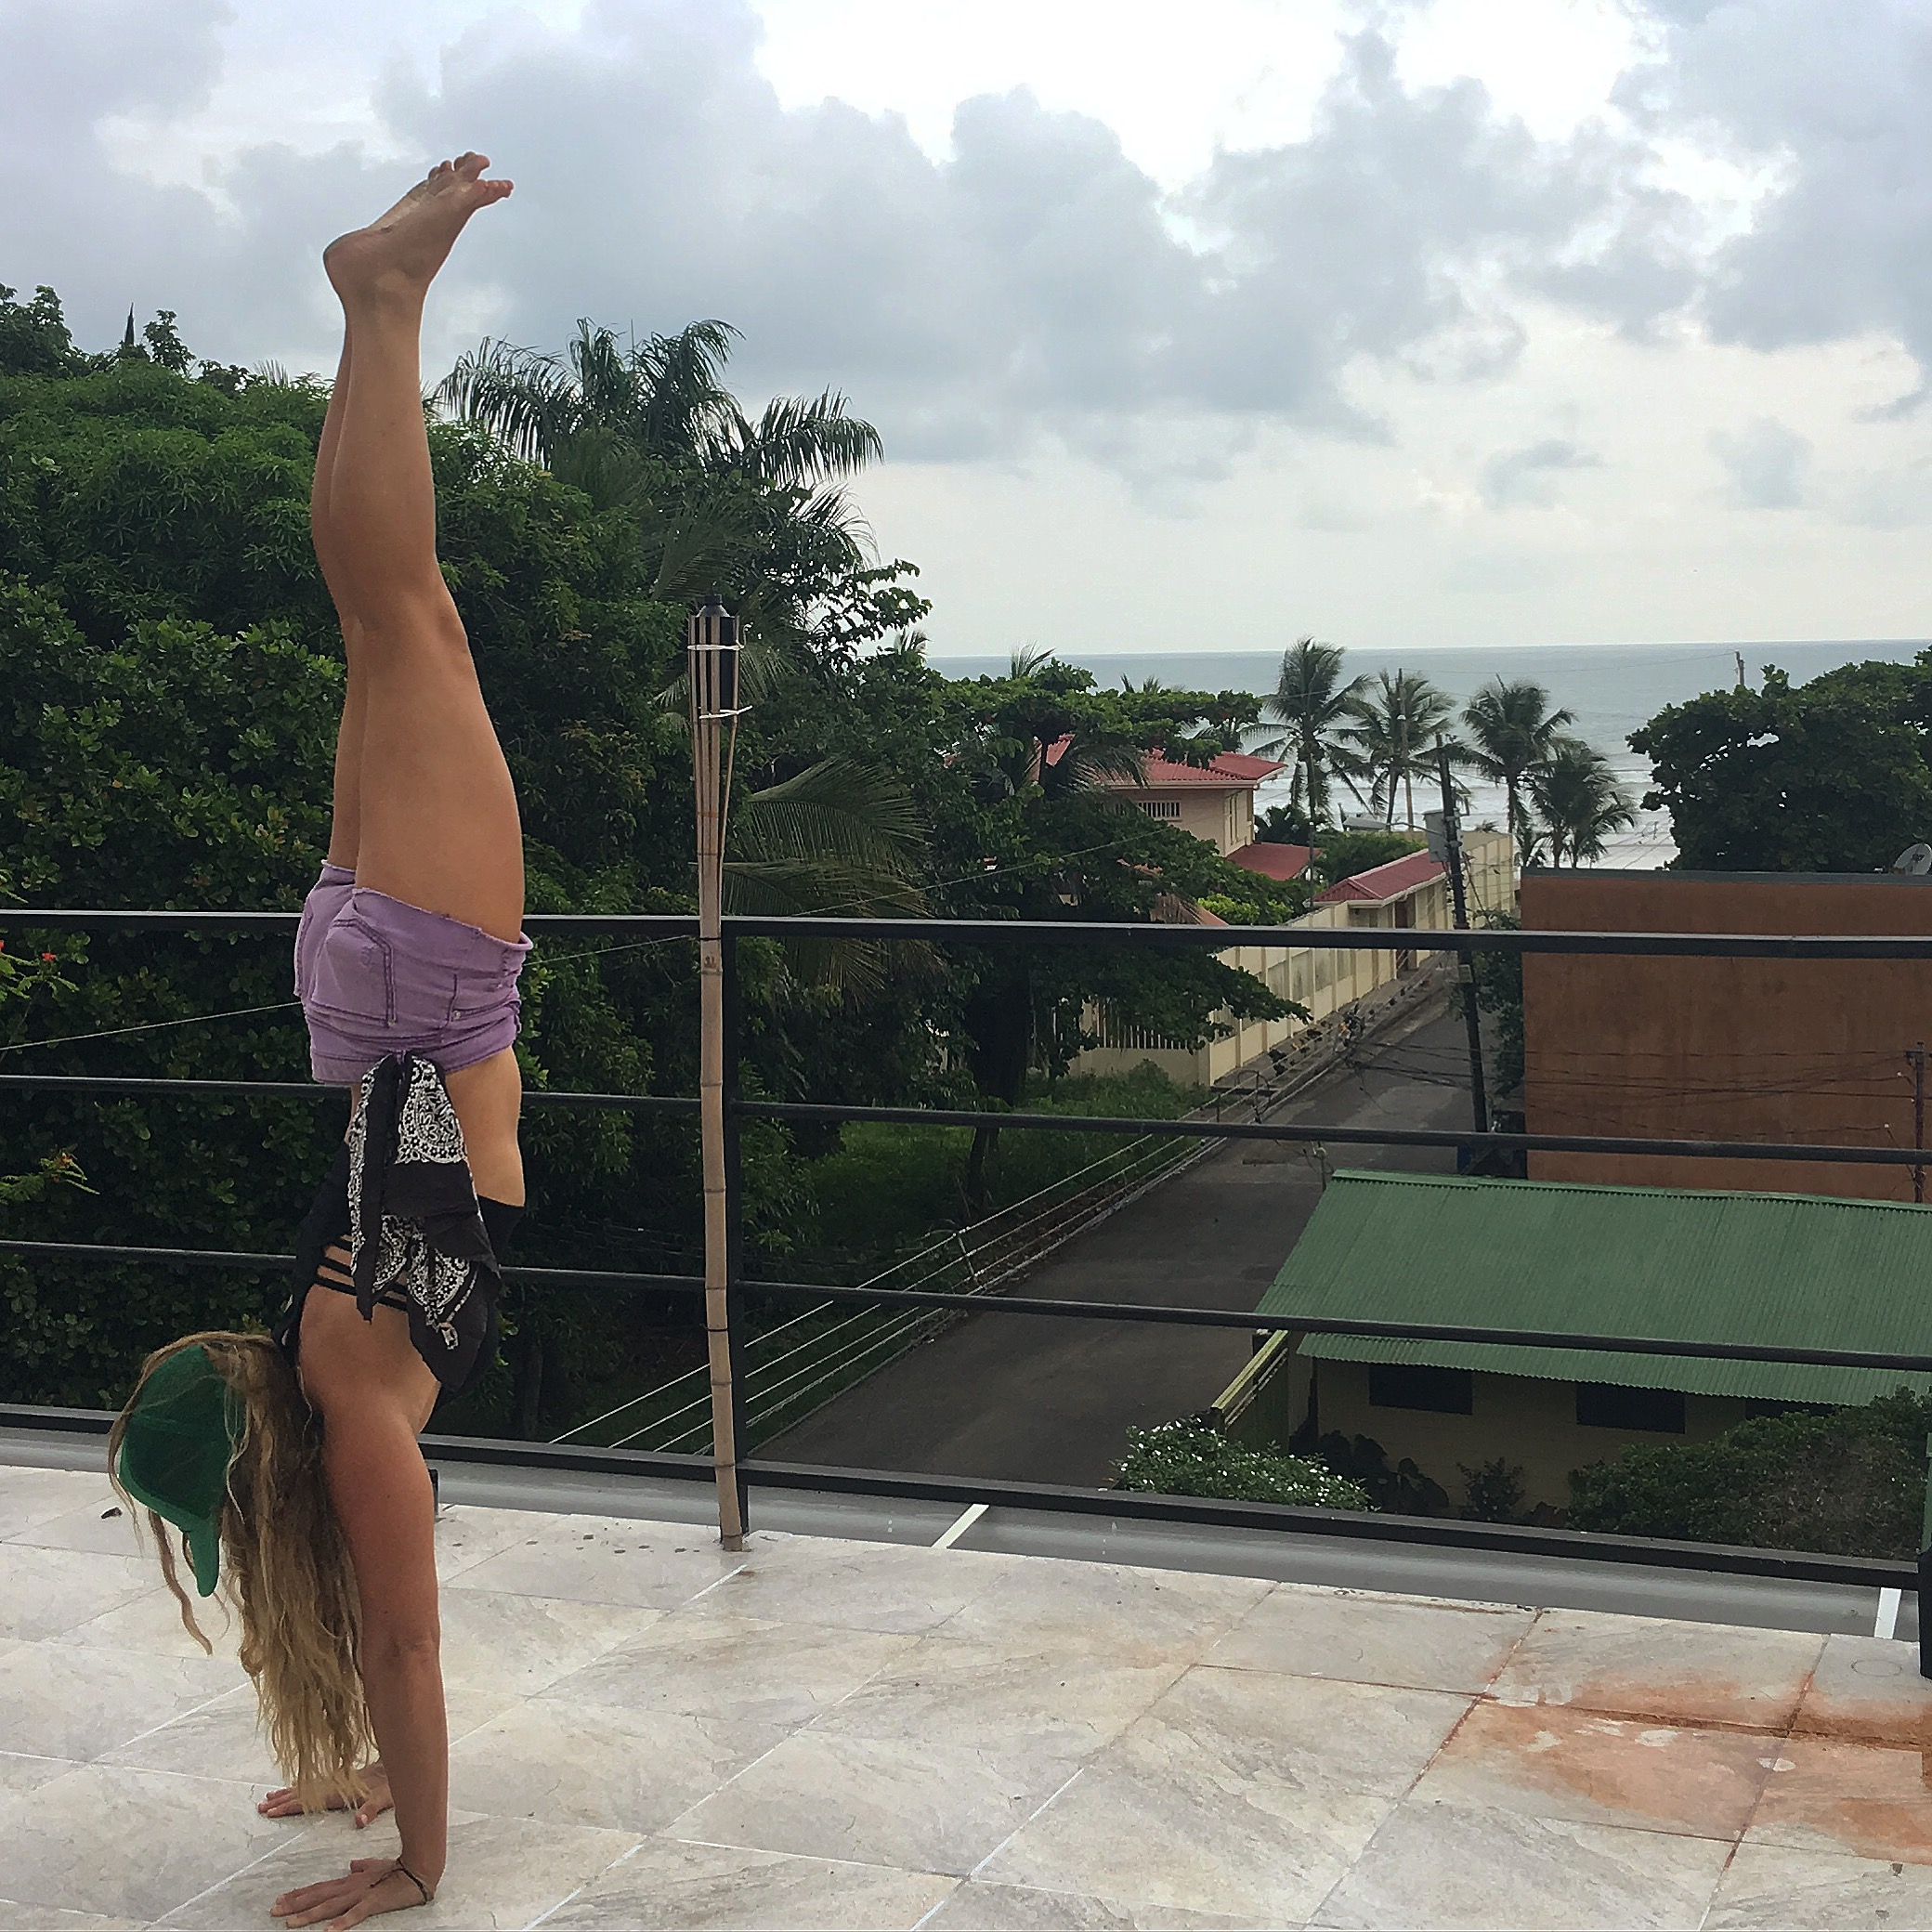 Handstanding on amiga's rooftop in Jaco, Costa Rica.